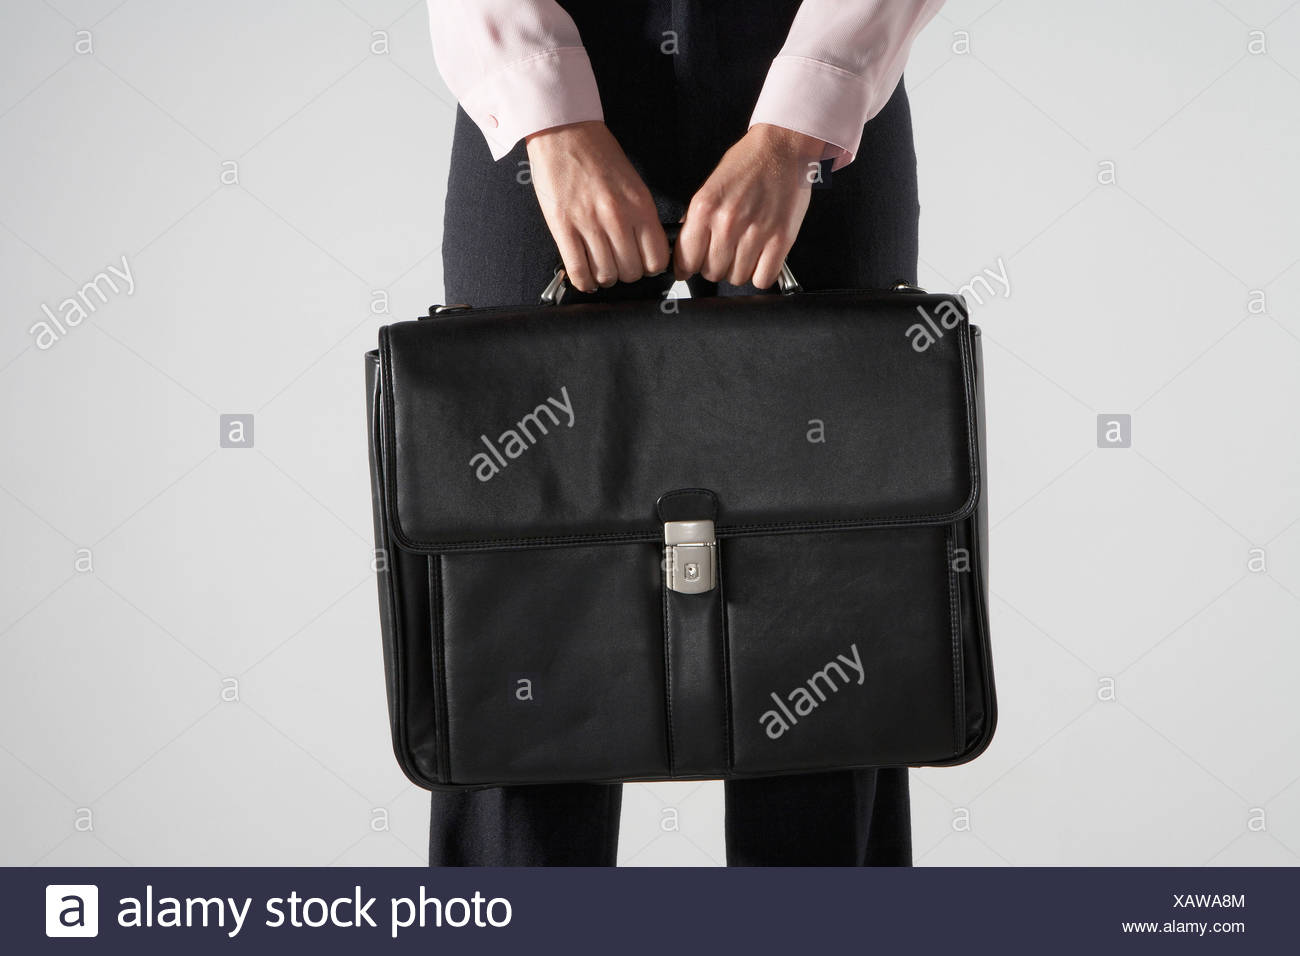 Woman holding a black brief case against her. - Stock Image